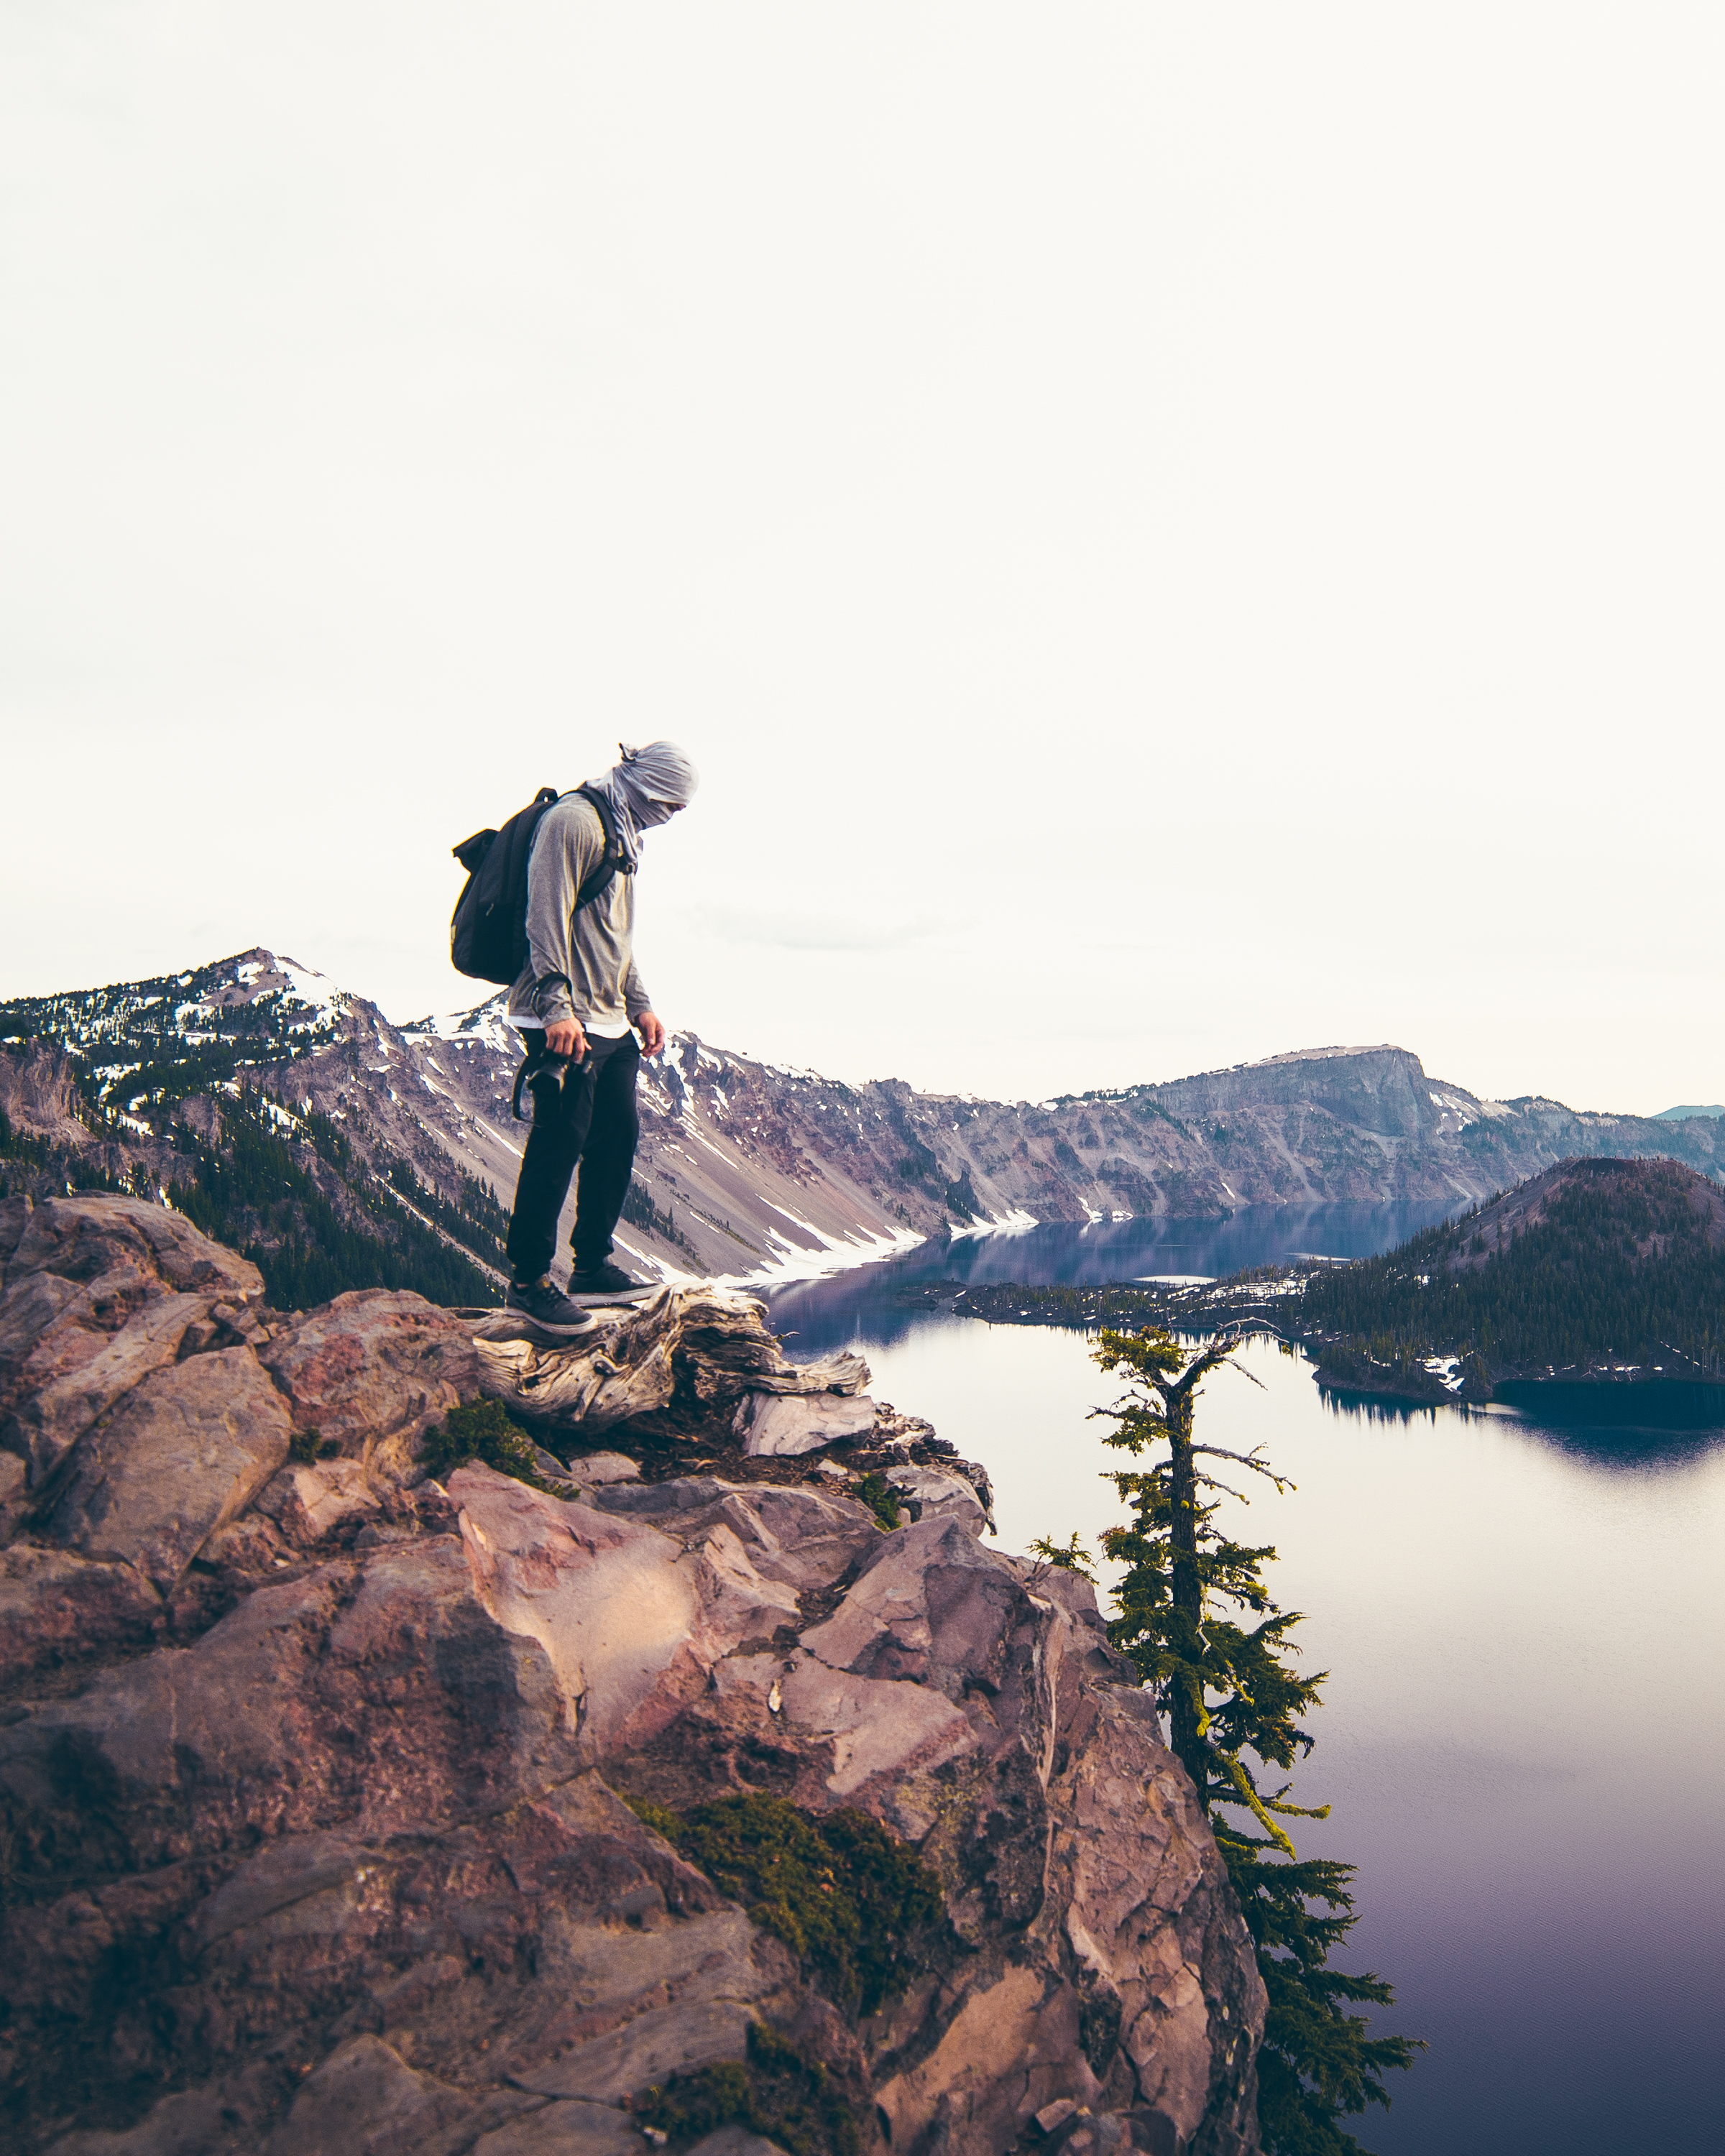 - Jordan Lacsina is an outdoor photographer from Hilo, Hawaii now living in Portland, Oregon. Through his travels he seeks adventure and captures his experiences along the way in hopes to inspire others to get out and explore!